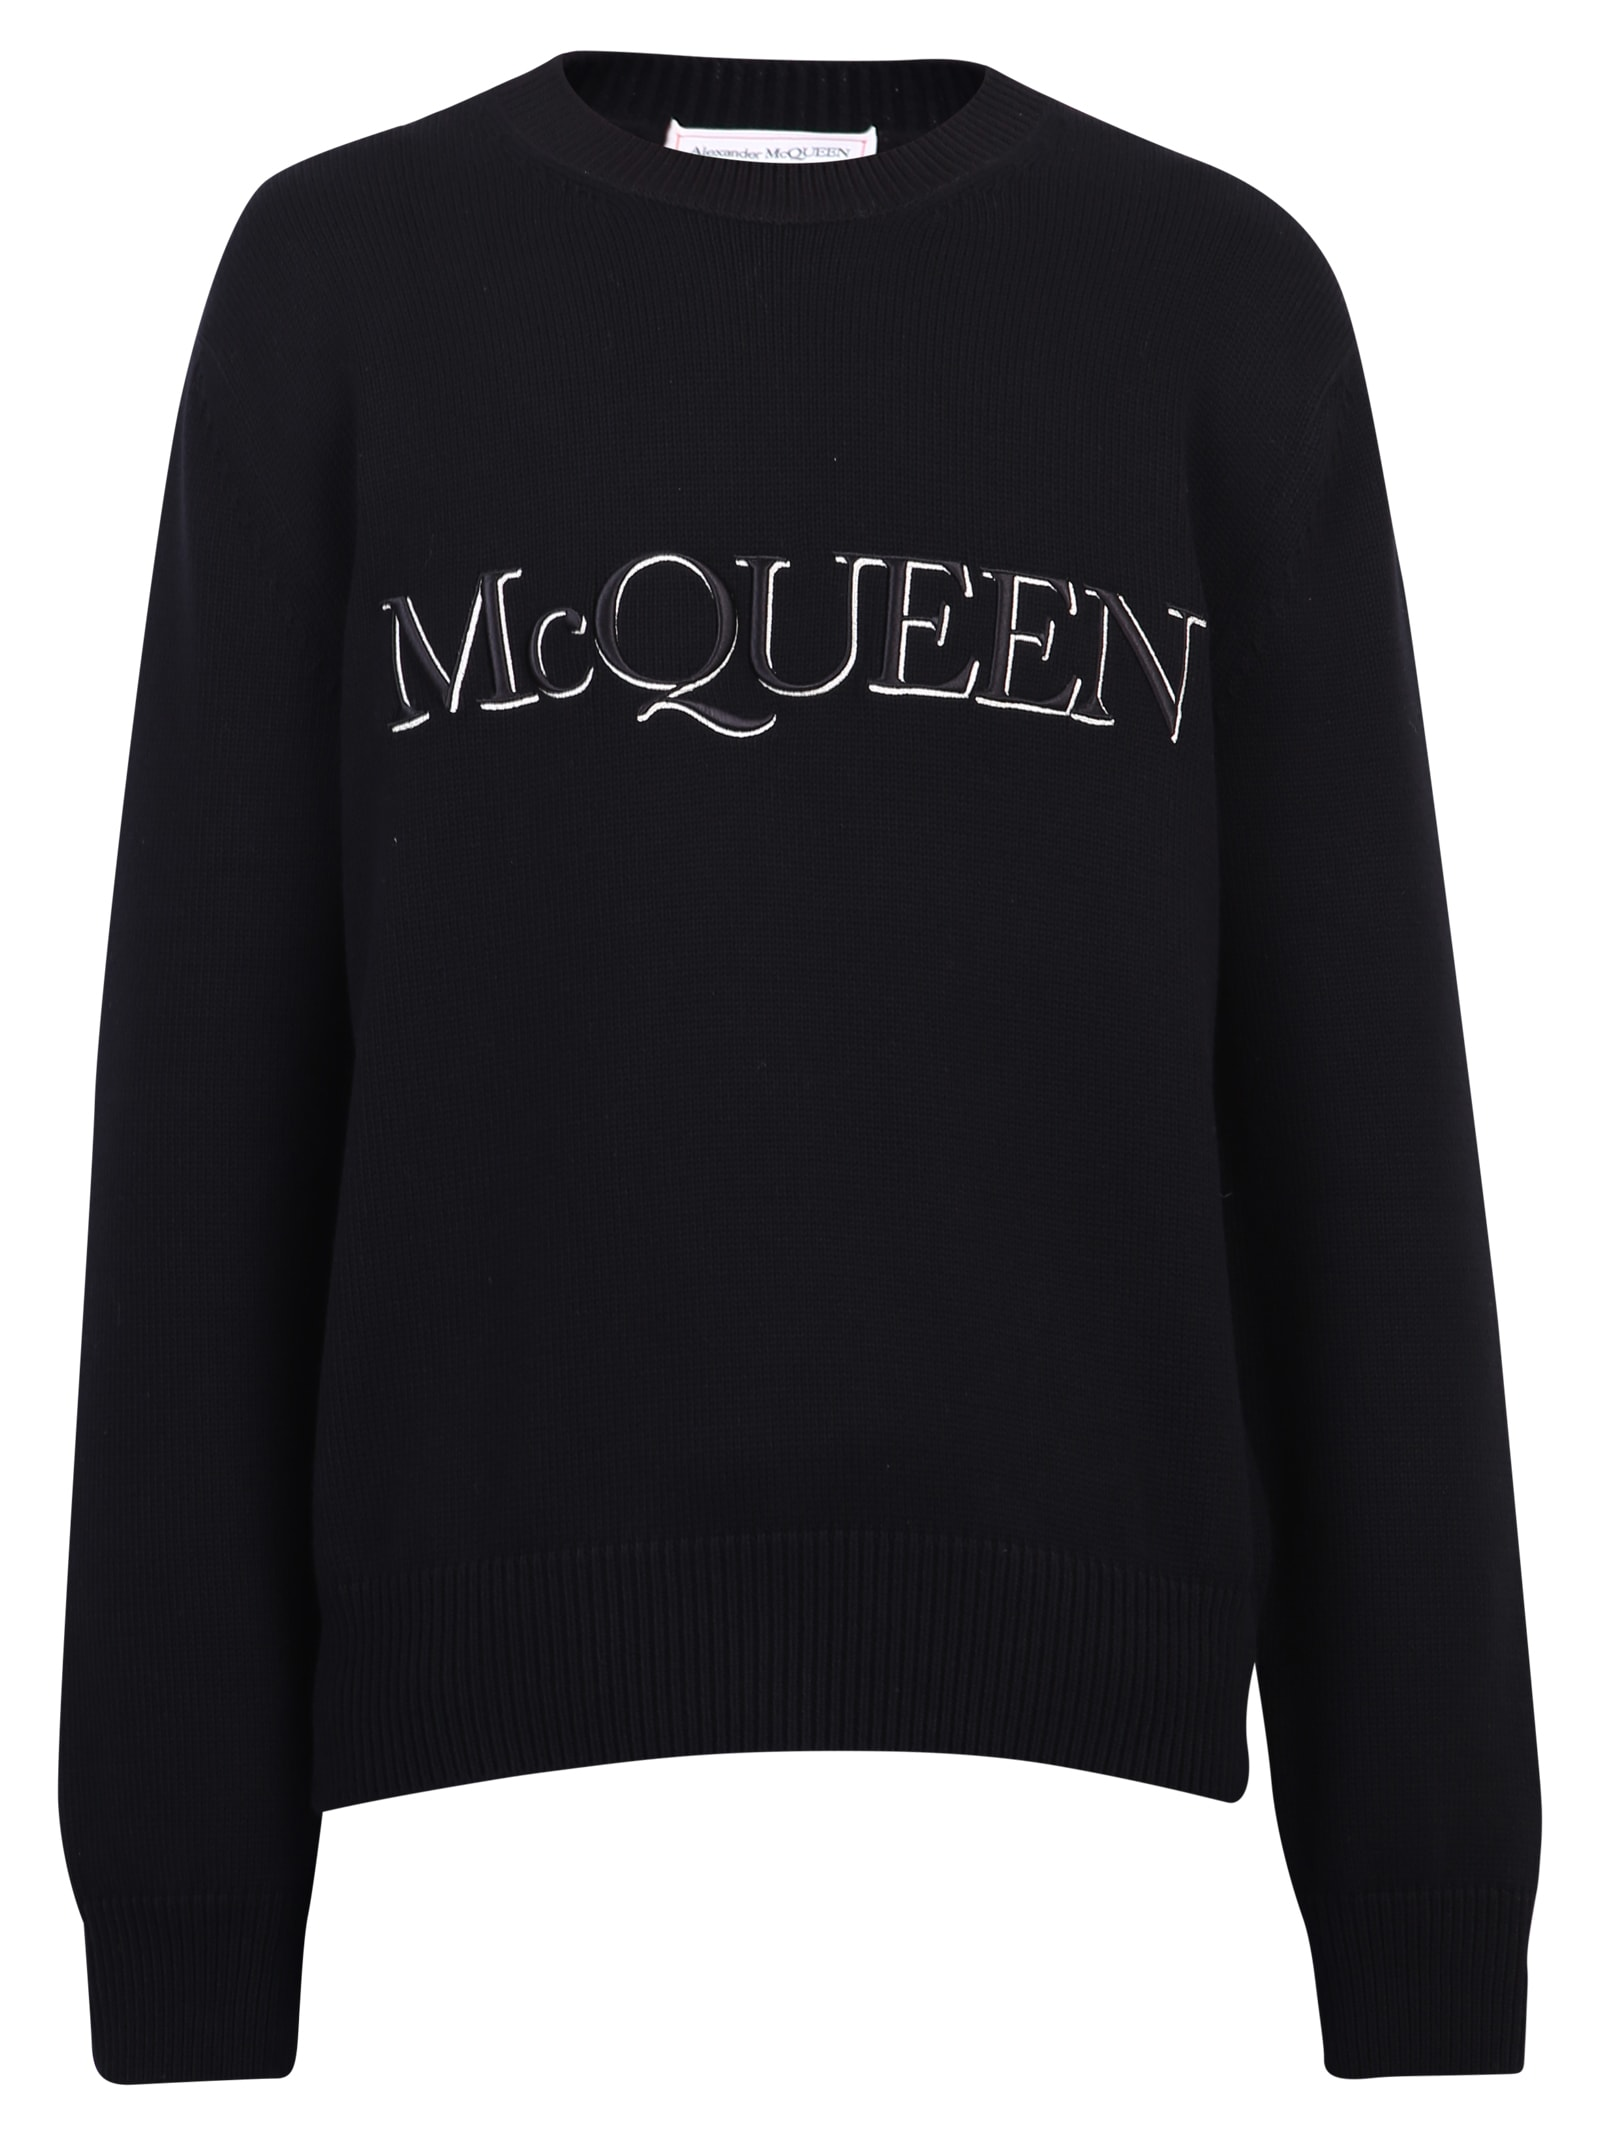 Alexander McQueen Branded Sweater